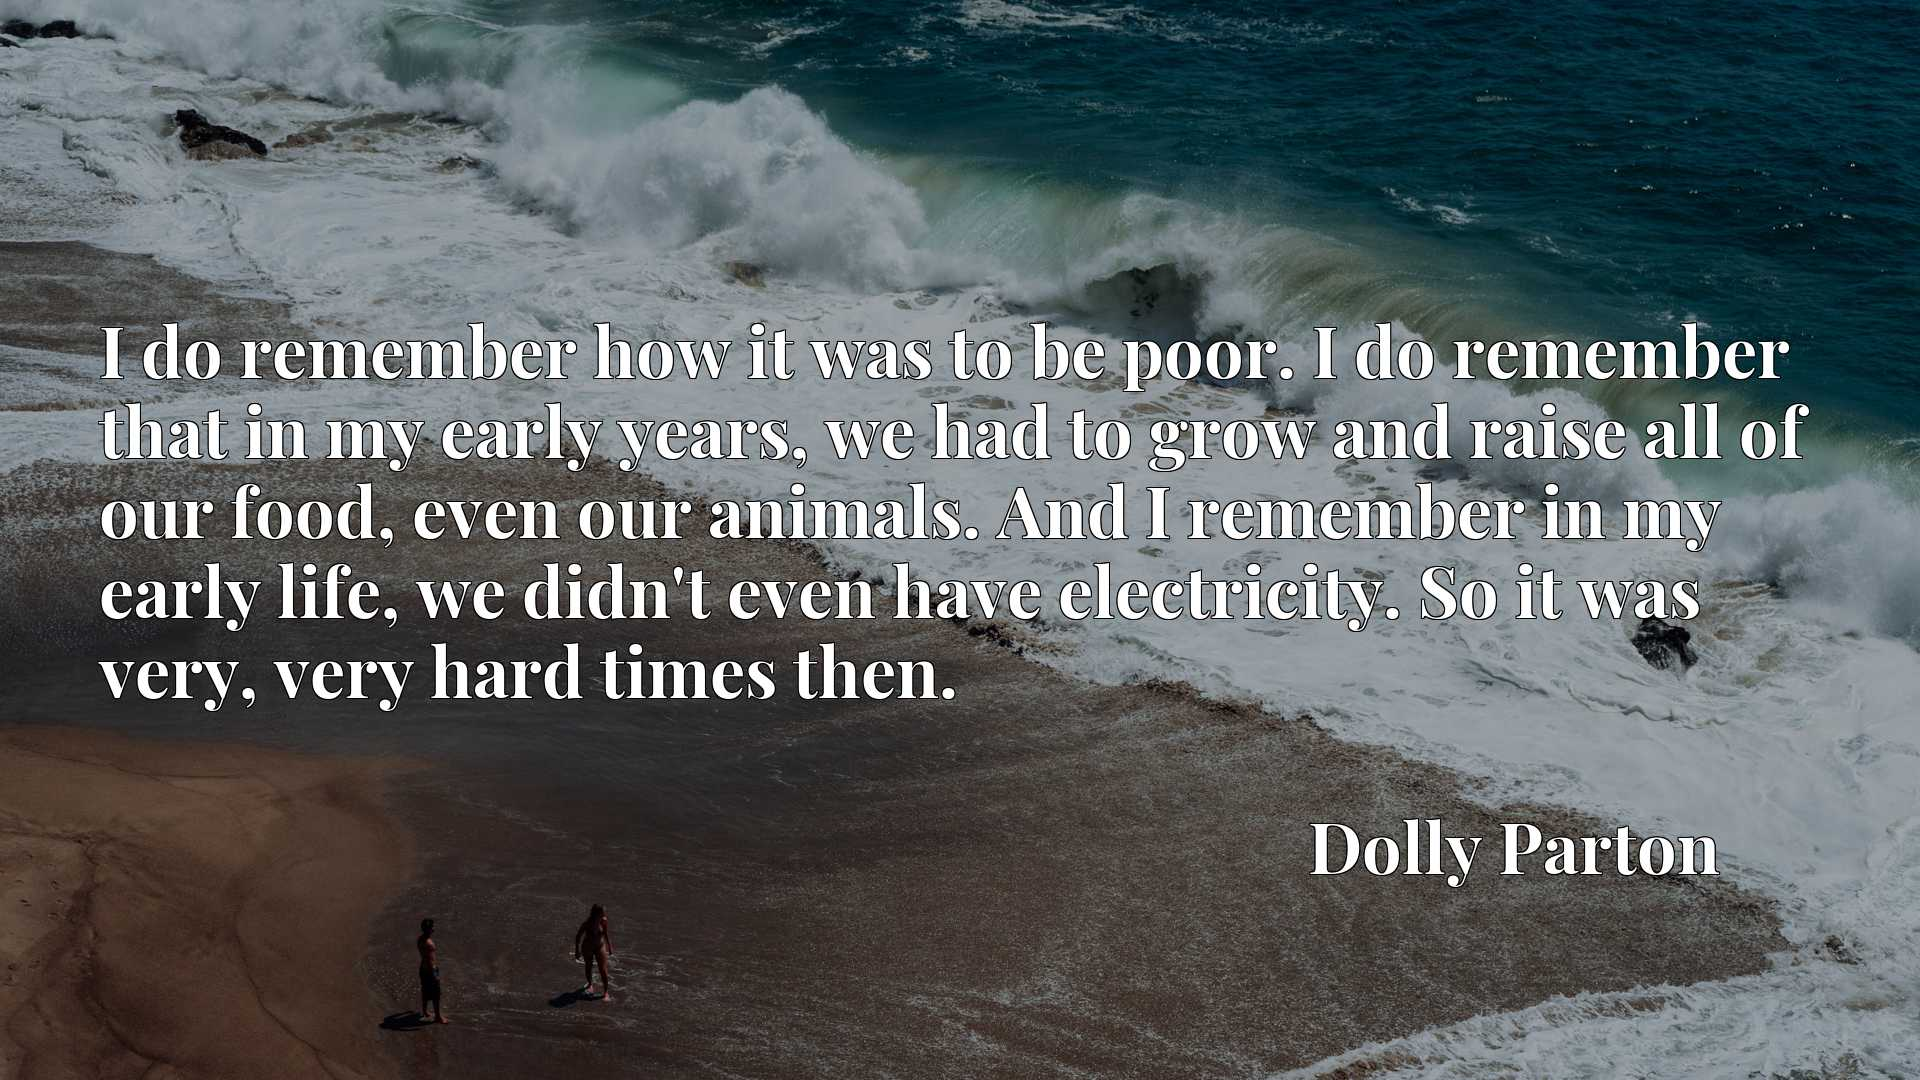 I do remember how it was to be poor. I do remember that in my early years, we had to grow and raise all of our food, even our animals. And I remember in my early life, we didn't even have electricity. So it was very, very hard times then.